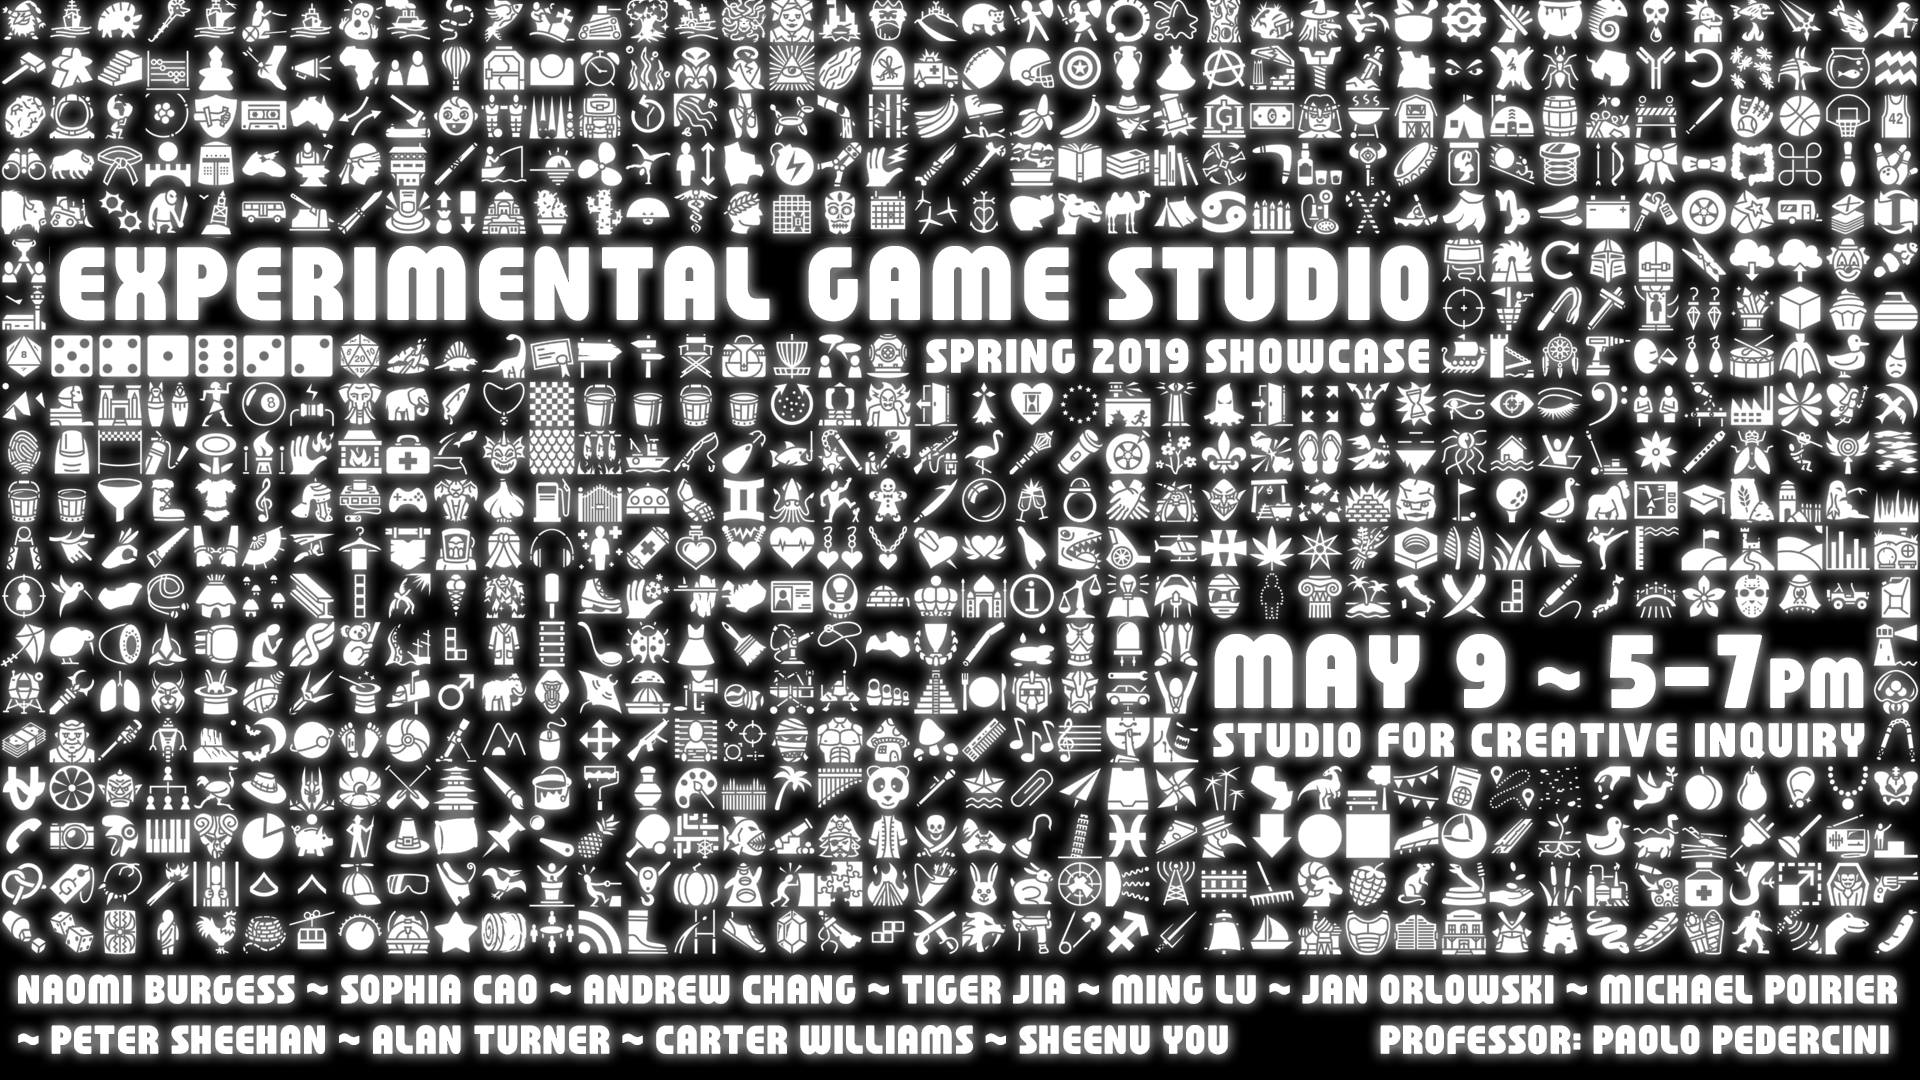 flyer for experimental game design showcase